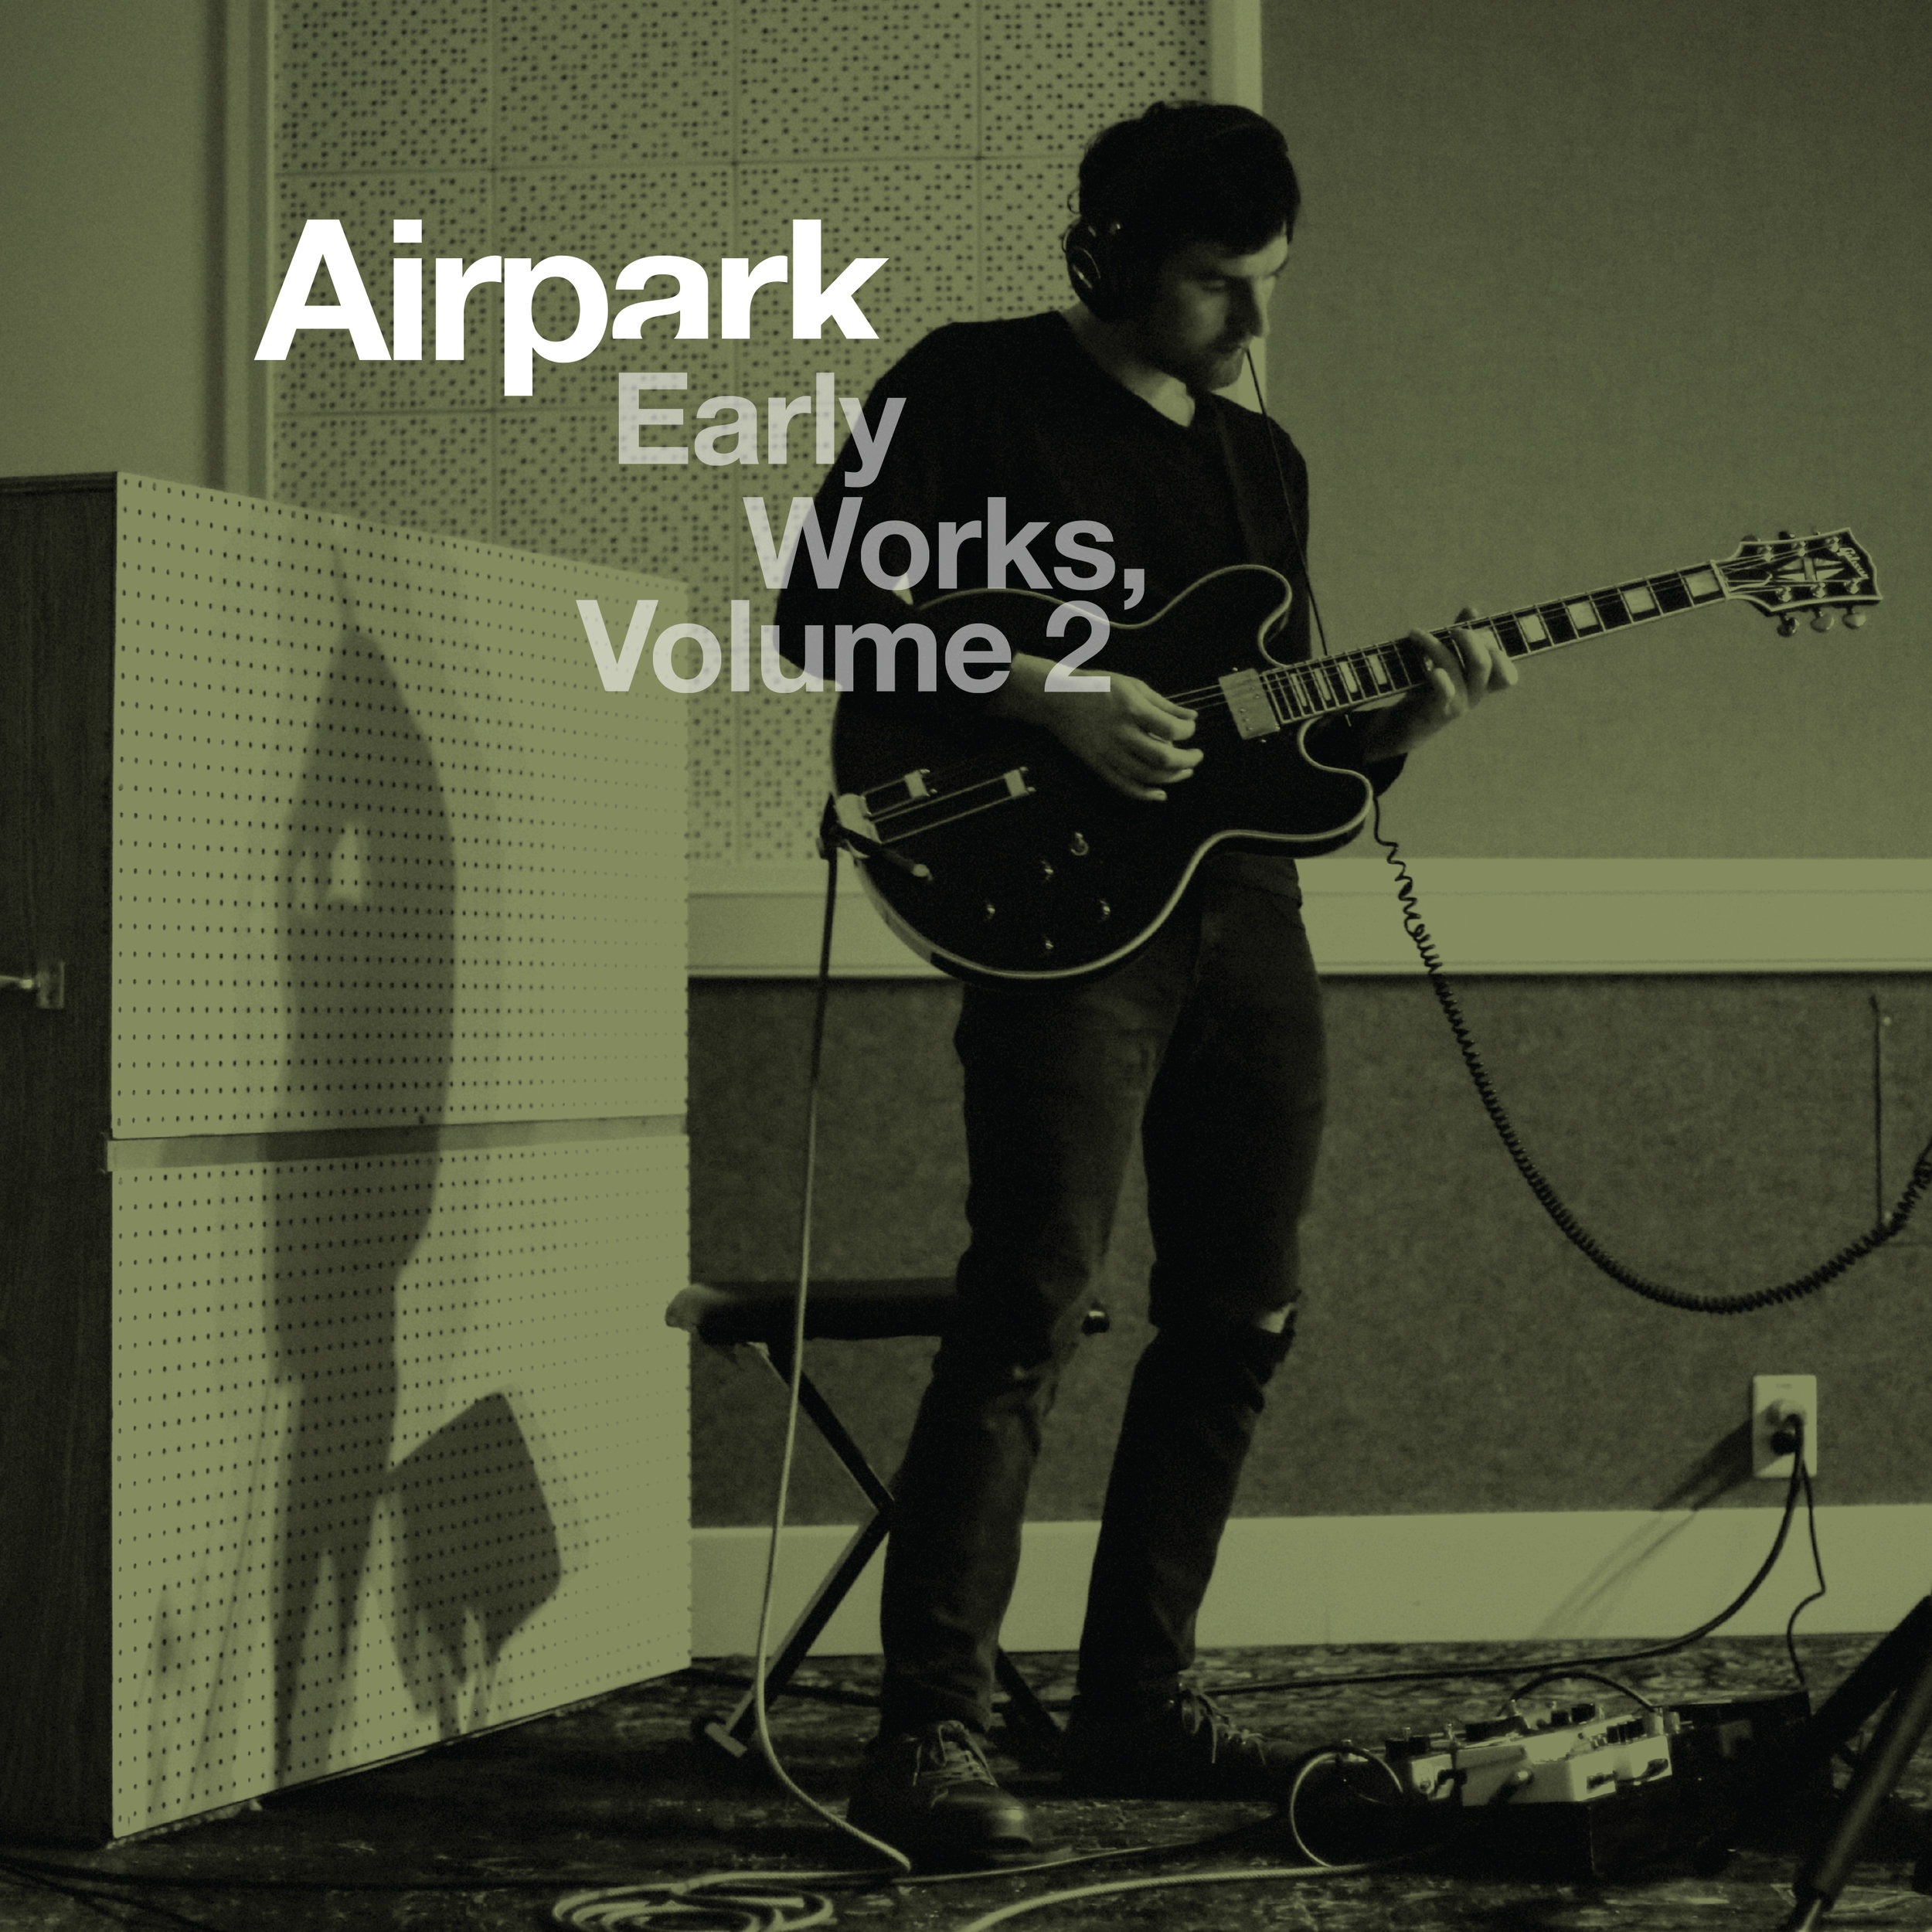 Airpark - Cover Art - Early Works, Volume 2 - EP.jpg